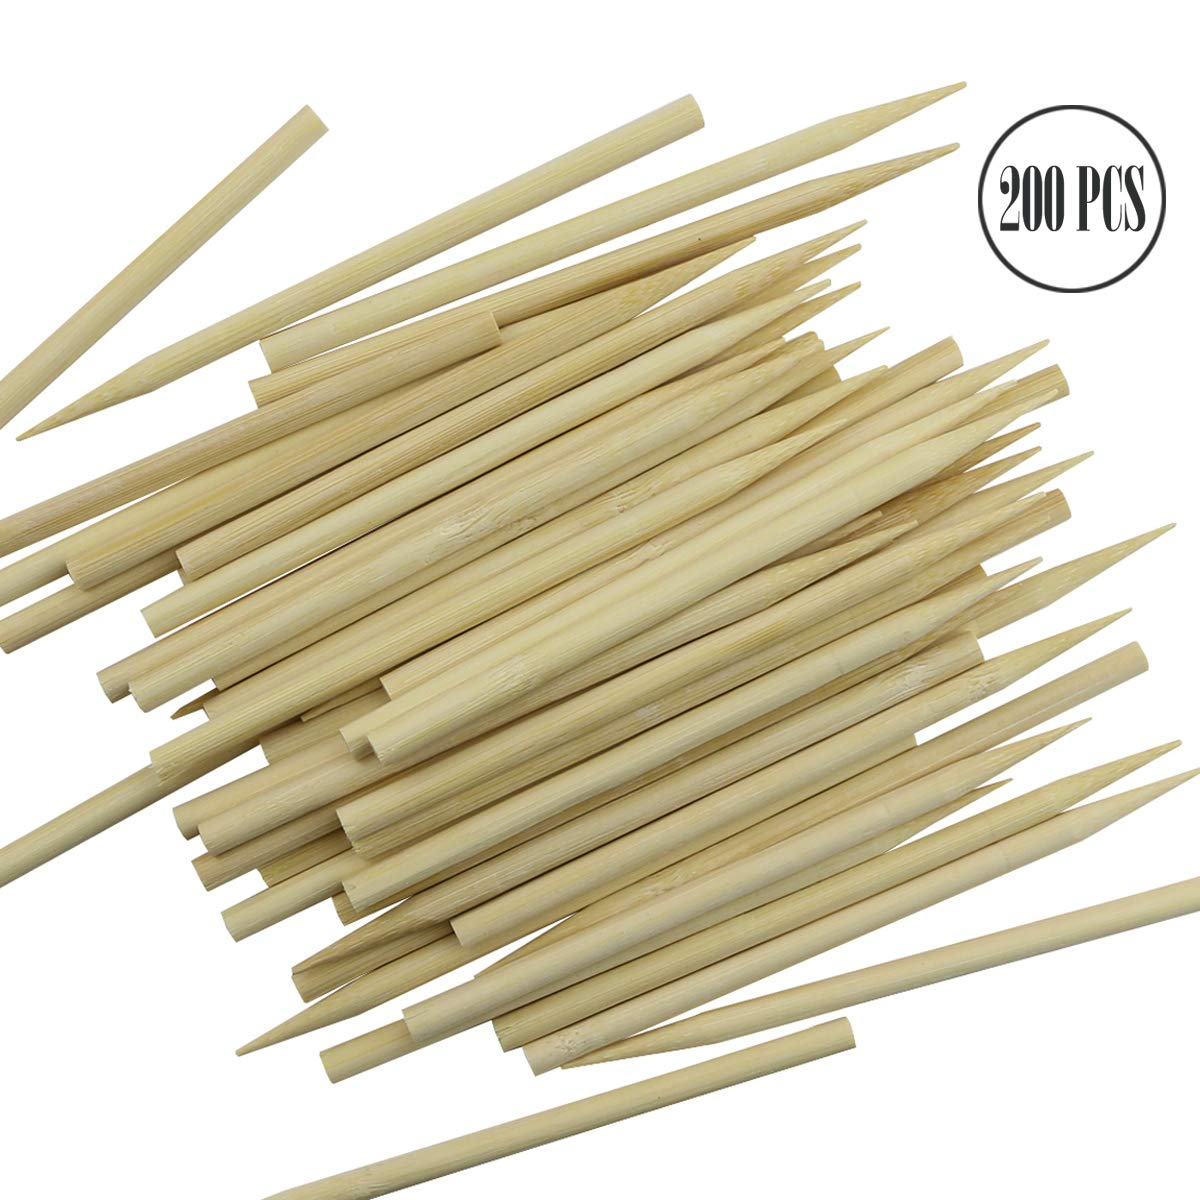 "BcPowr 200PCS Roasting Sticks Wooden Candy Apple Skewer Sticks Candy Stick Candy Stick Skewer Semi Pointed Lollipop Sticks Environmentally Safe (5.12"" x 0.24"")"